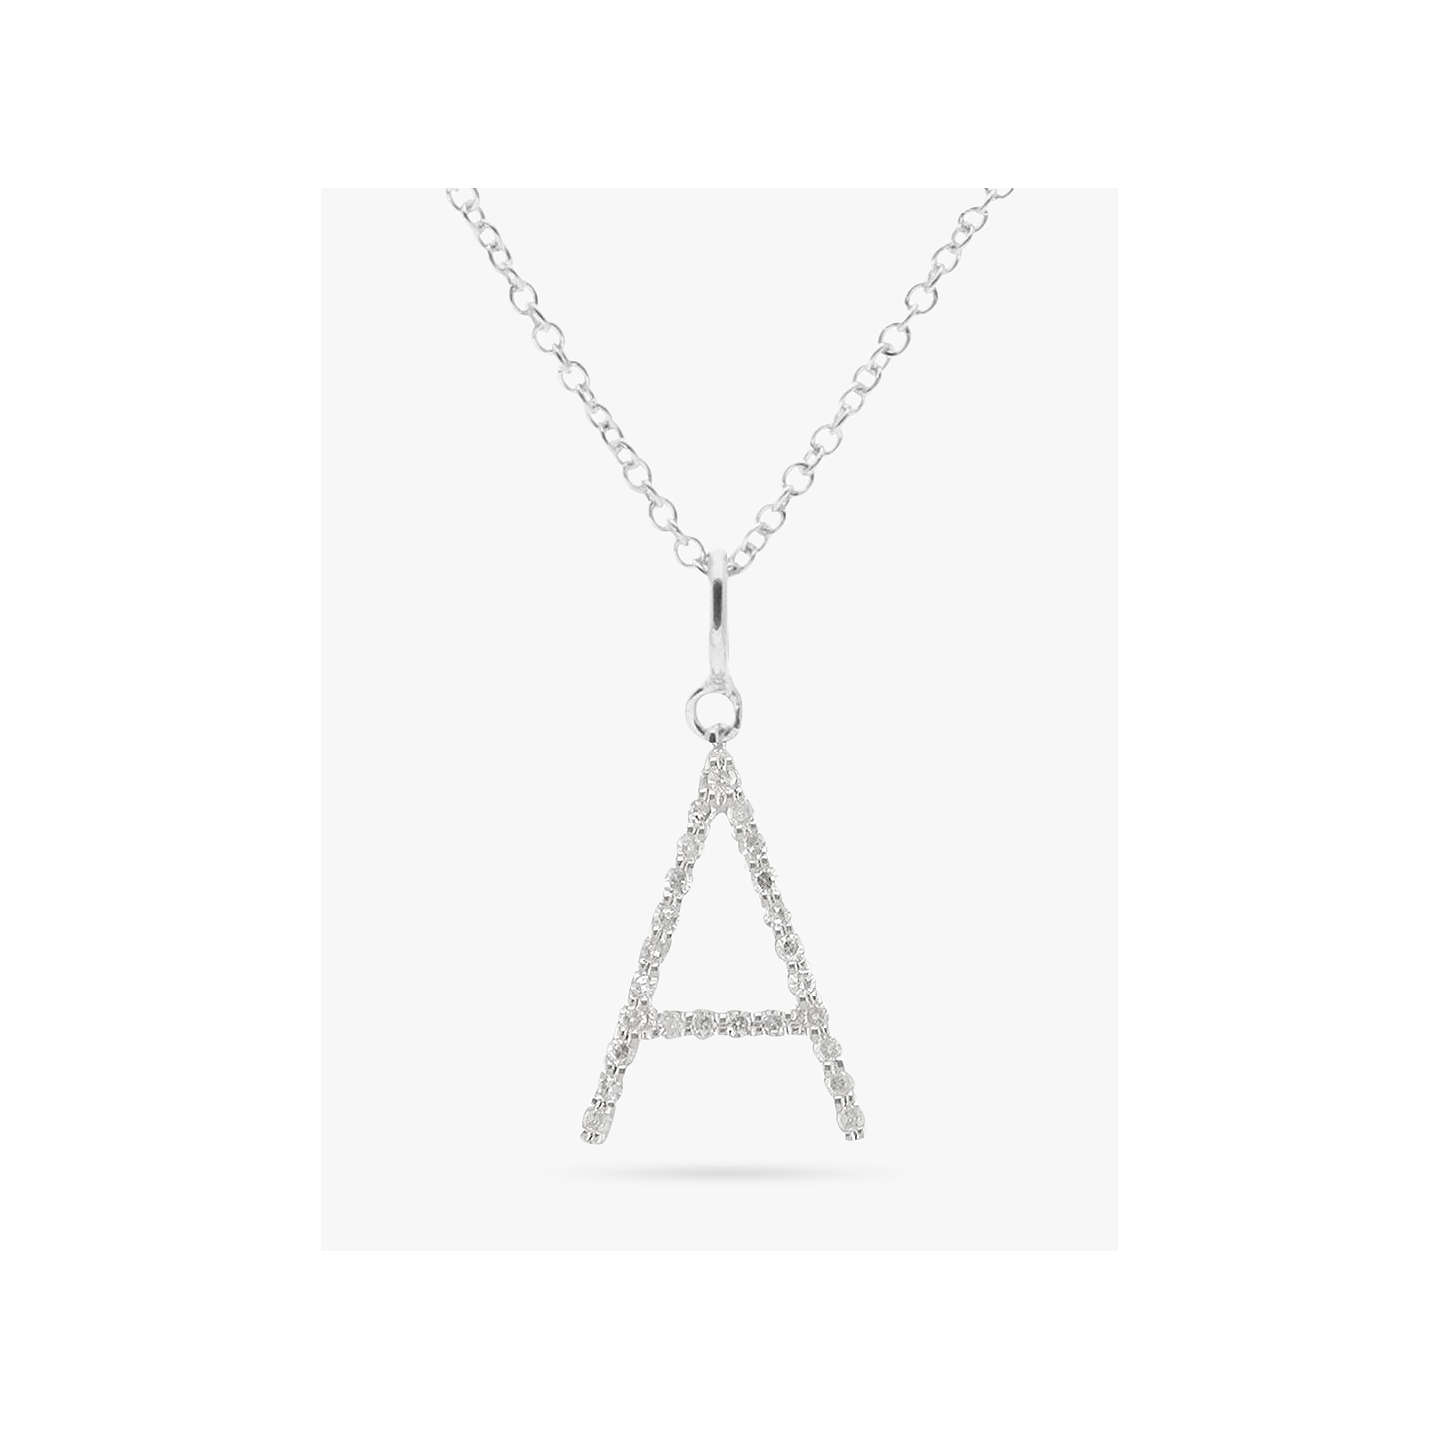 Ewa 9ct white gold diamond letter pendant at john lewis buyewa adams 9ct white gold diamond letter pendant a online at johnlewis mozeypictures